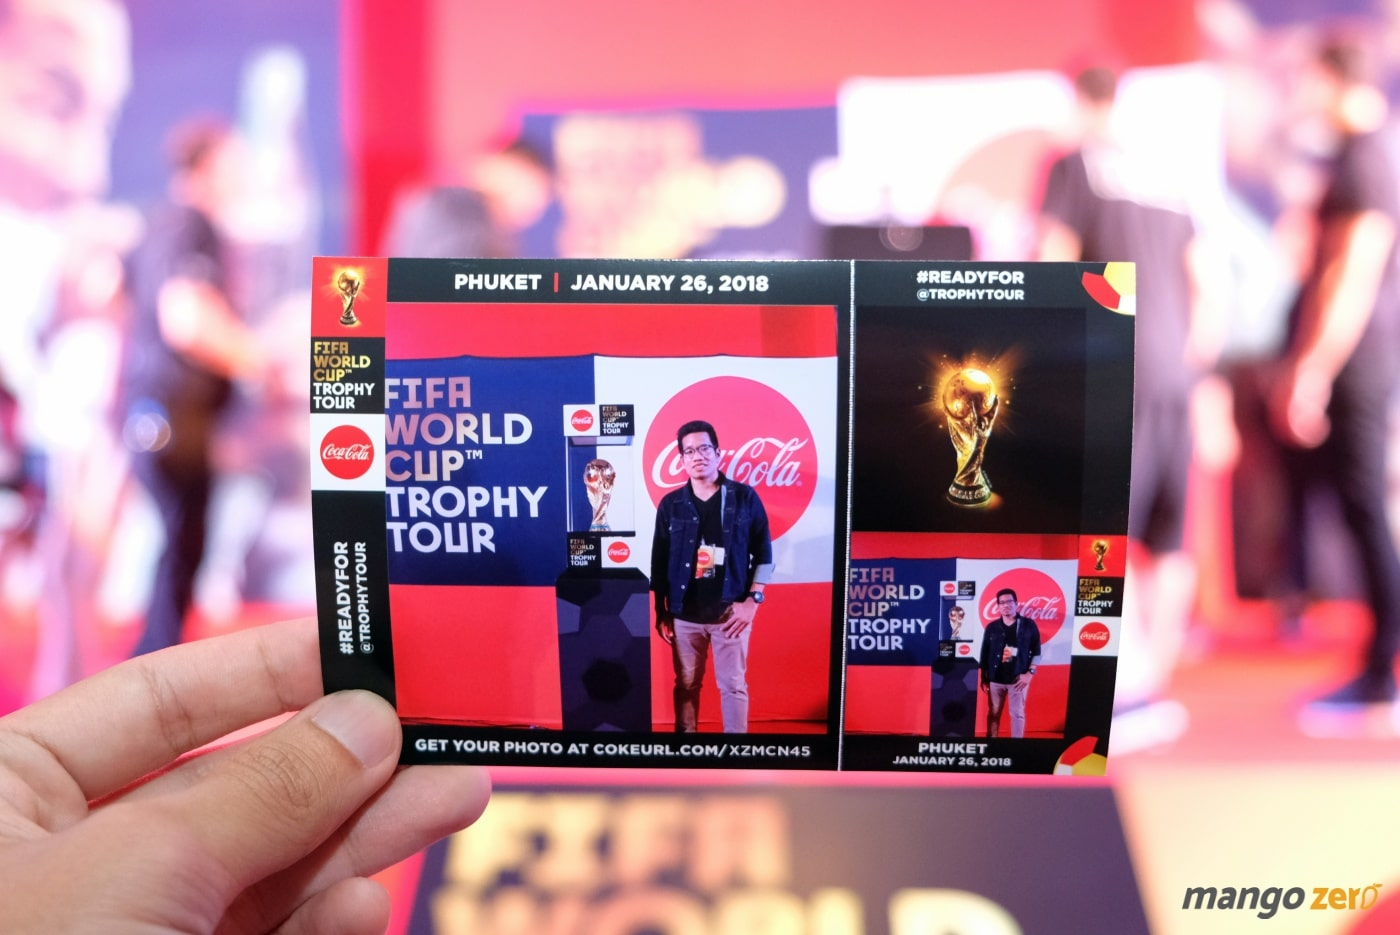 2018-fifa-world-cup-trophy-tour-by-coca-cola-at-phuket-21